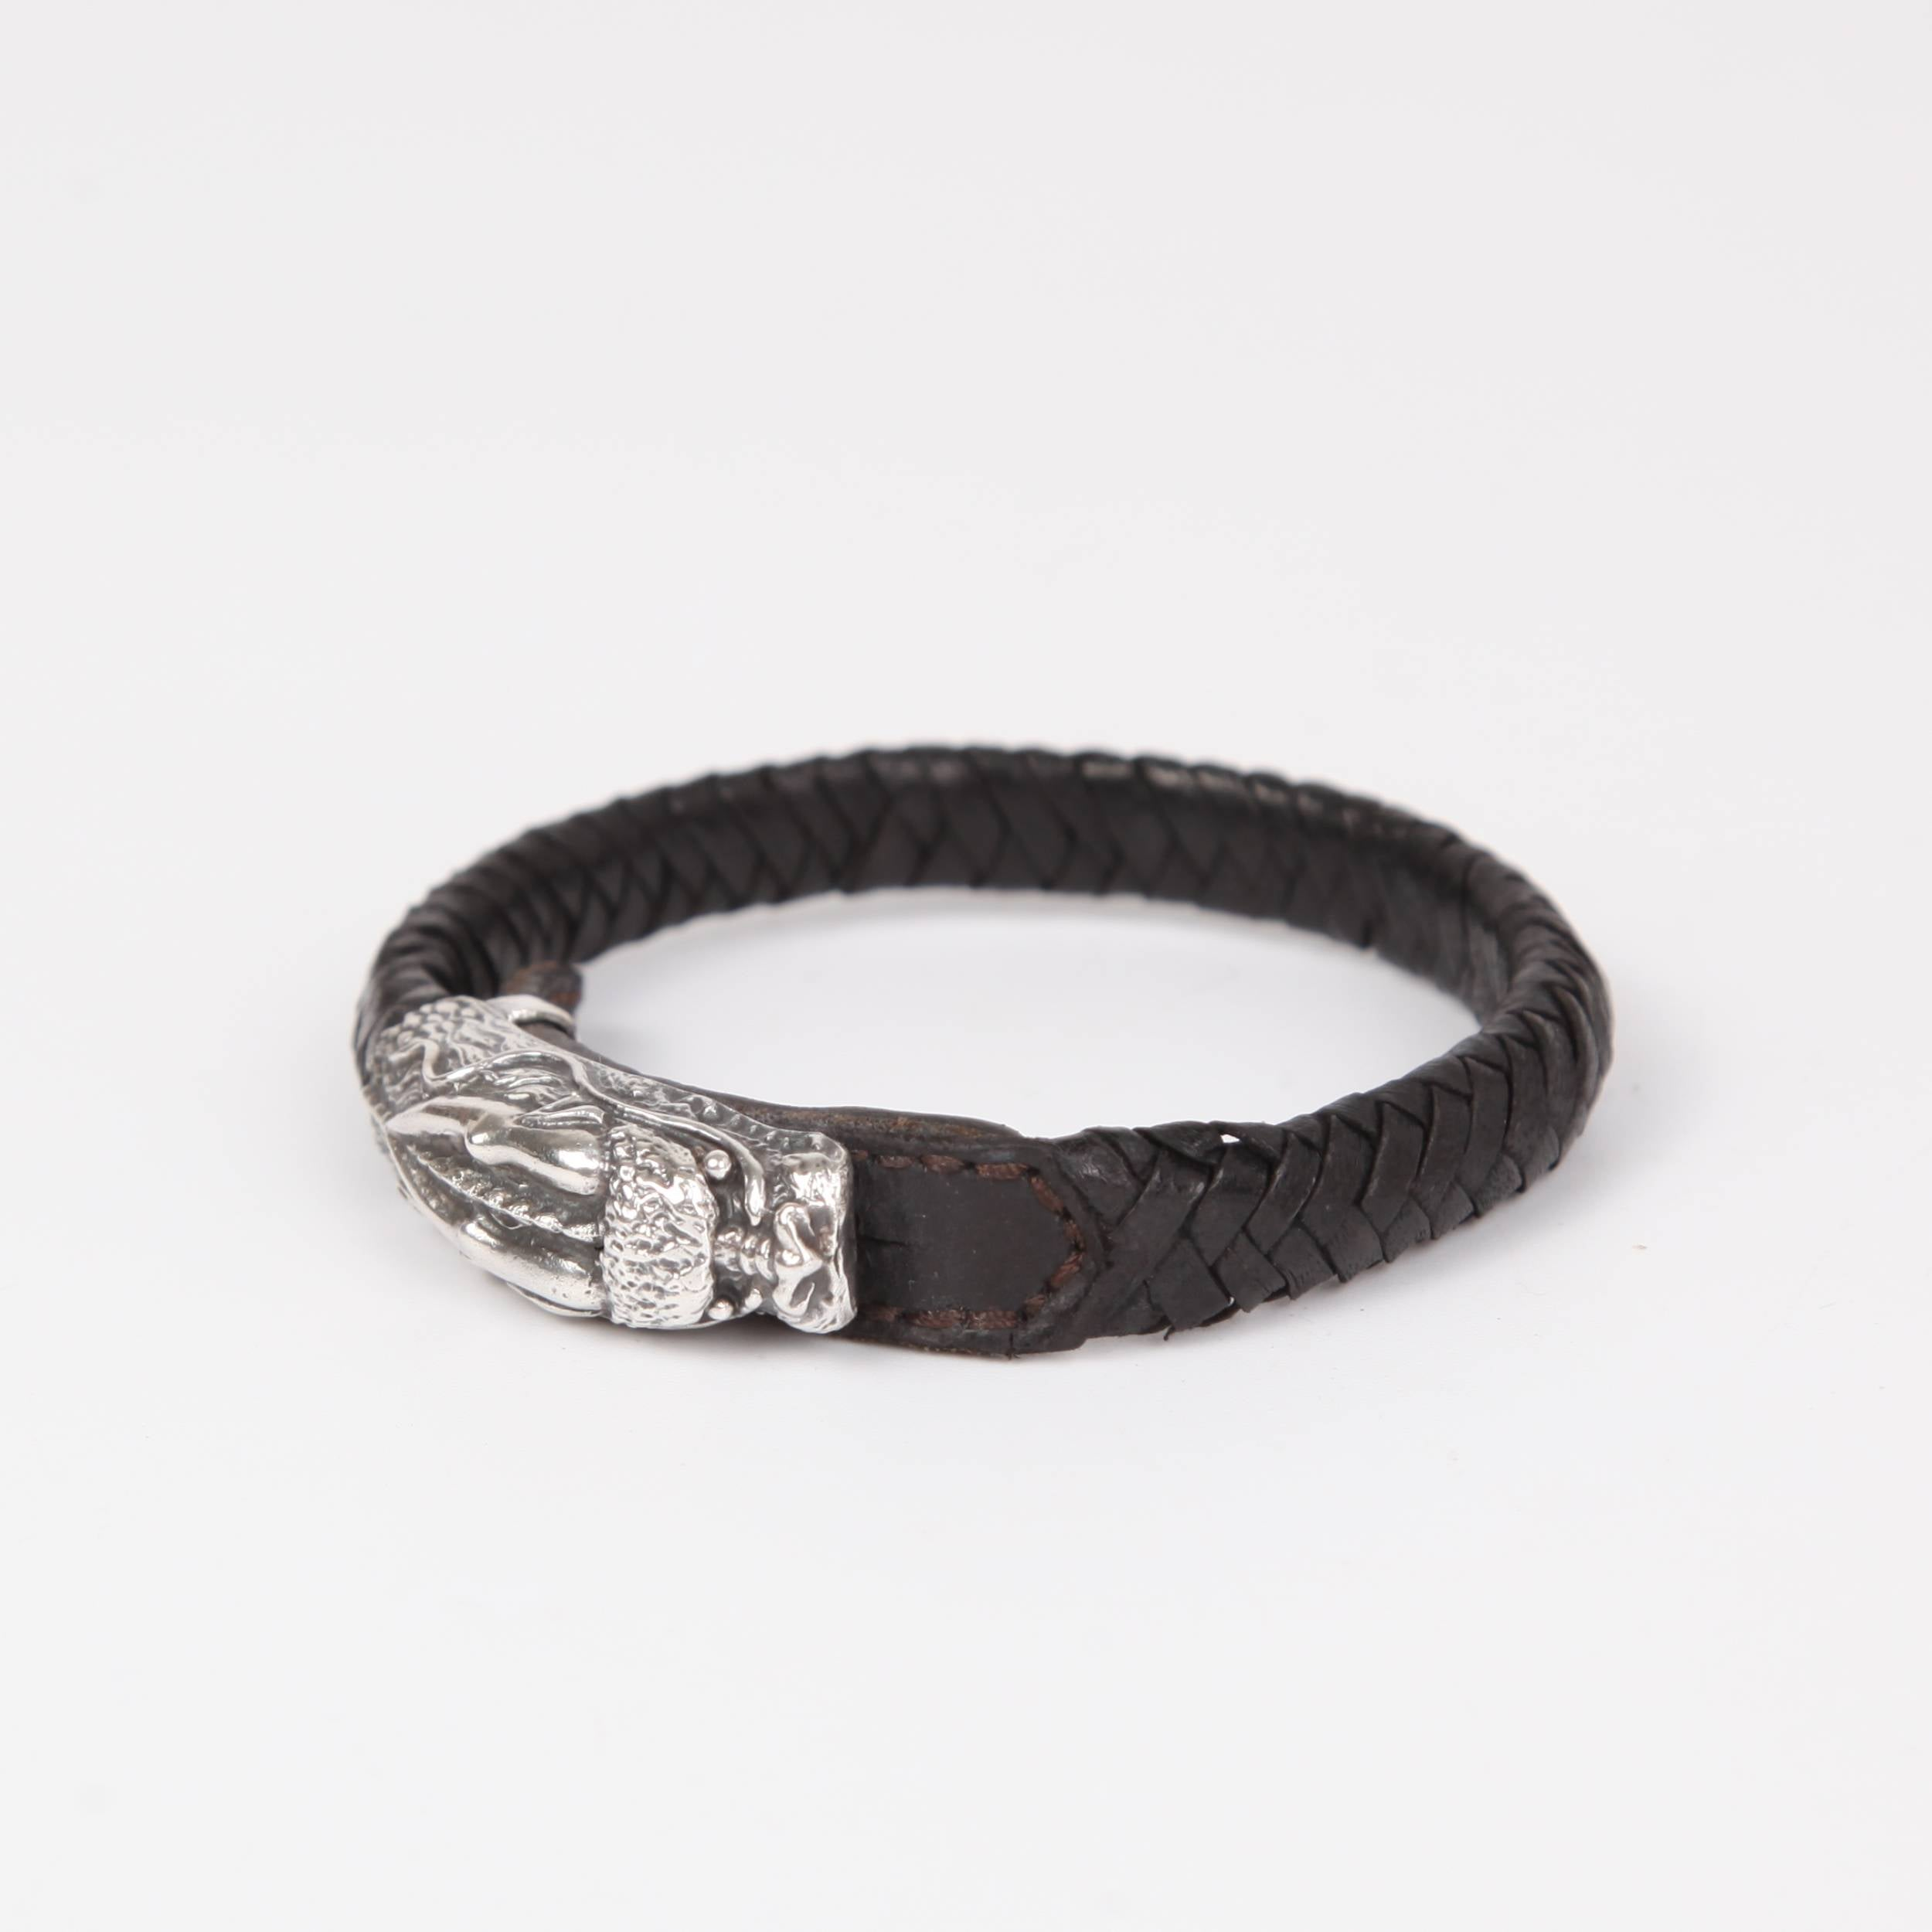 Leather (Goat skin) Bracelet with Sterling Silver Dragon Head